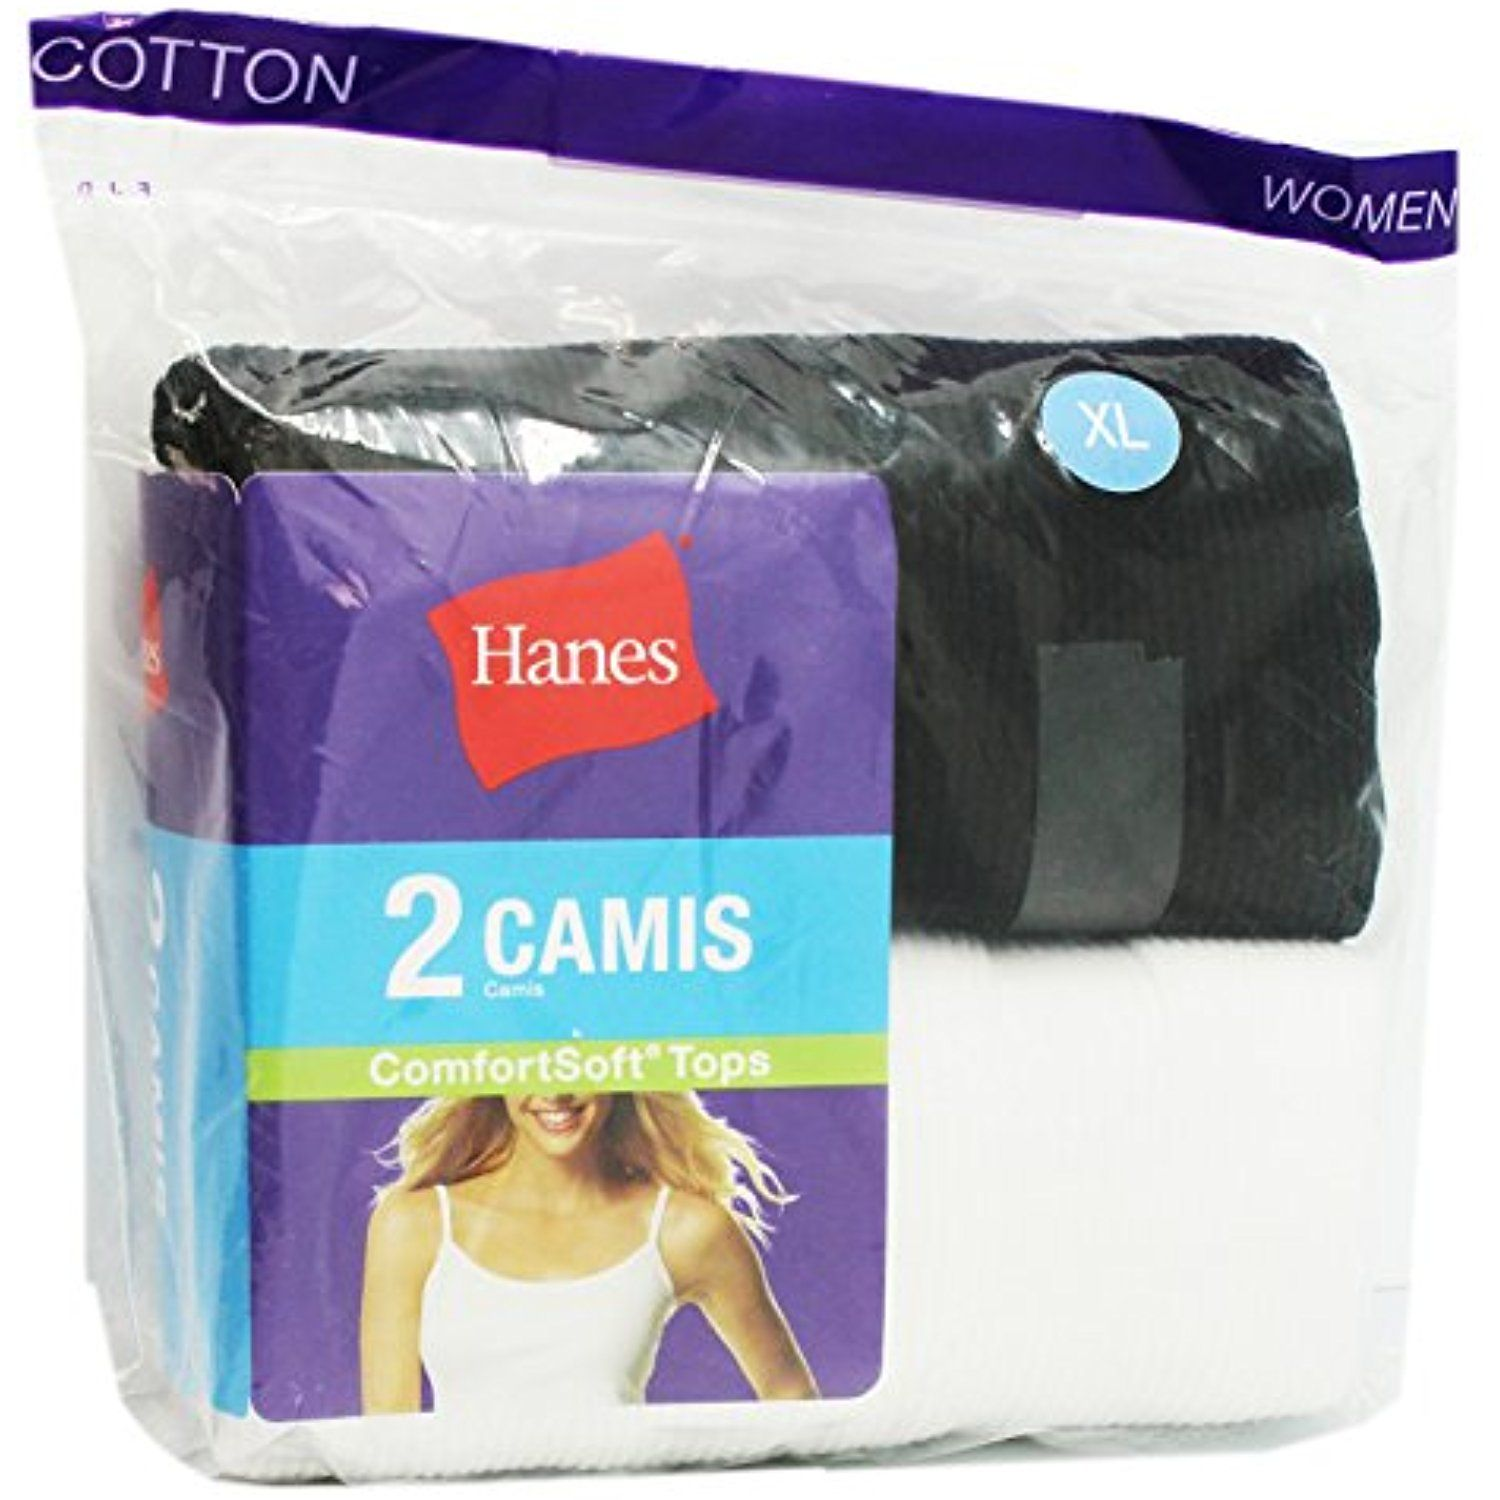 Black and White Hanes 2 Pack Women's Camis (Size Large